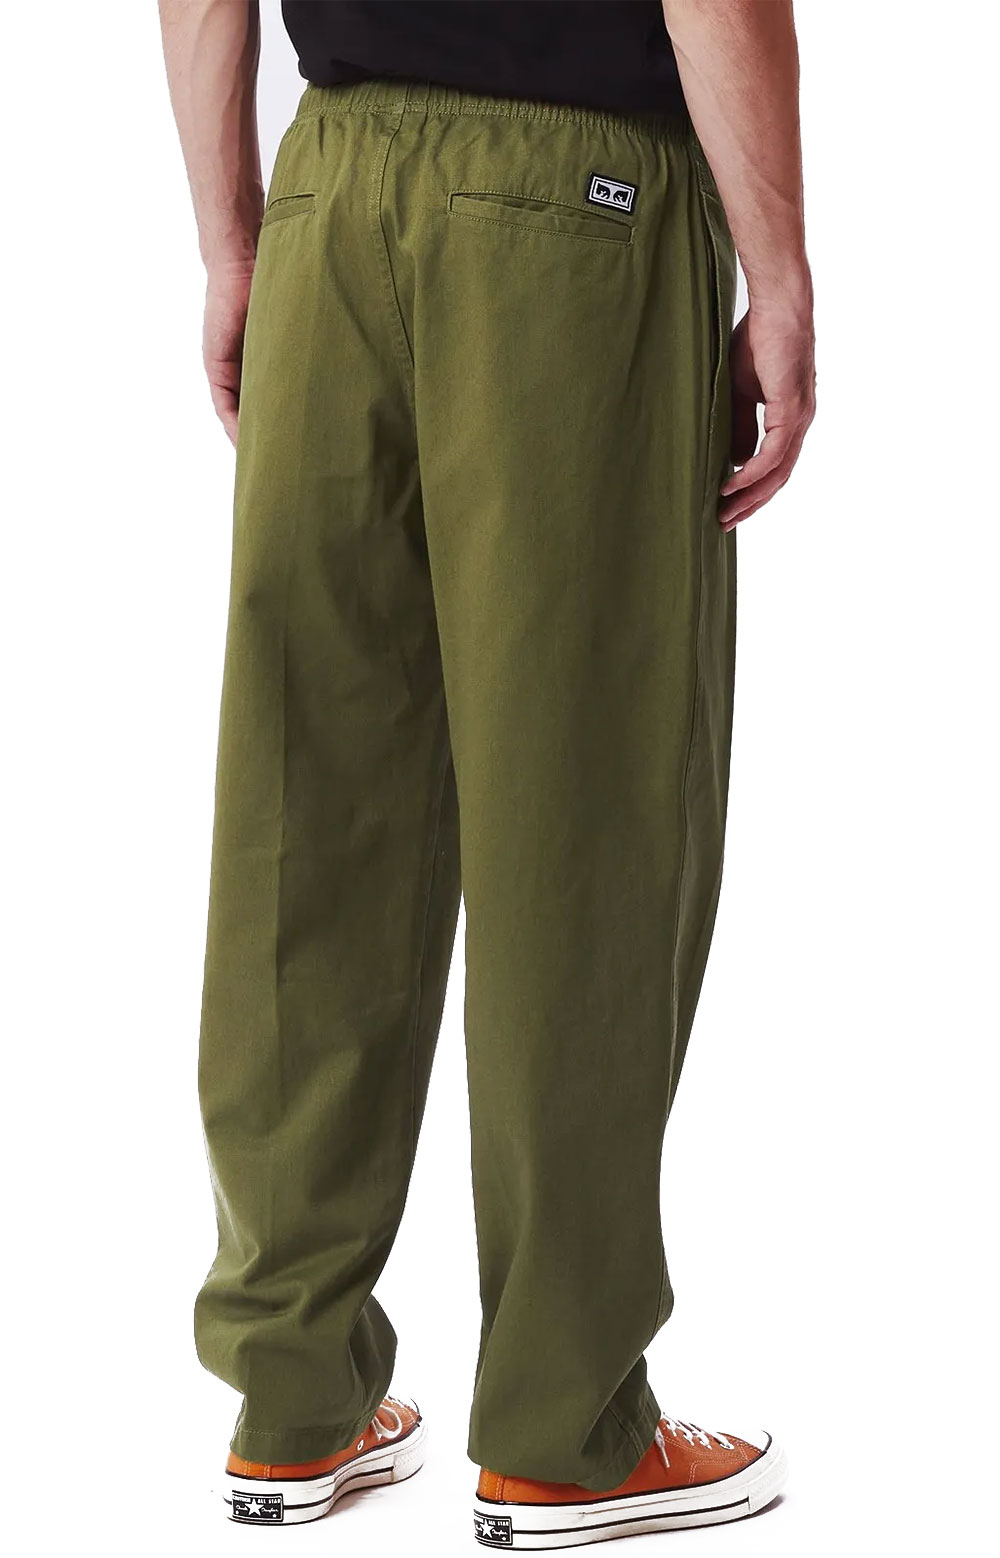 Easy Twill Pant - Army Tent  3